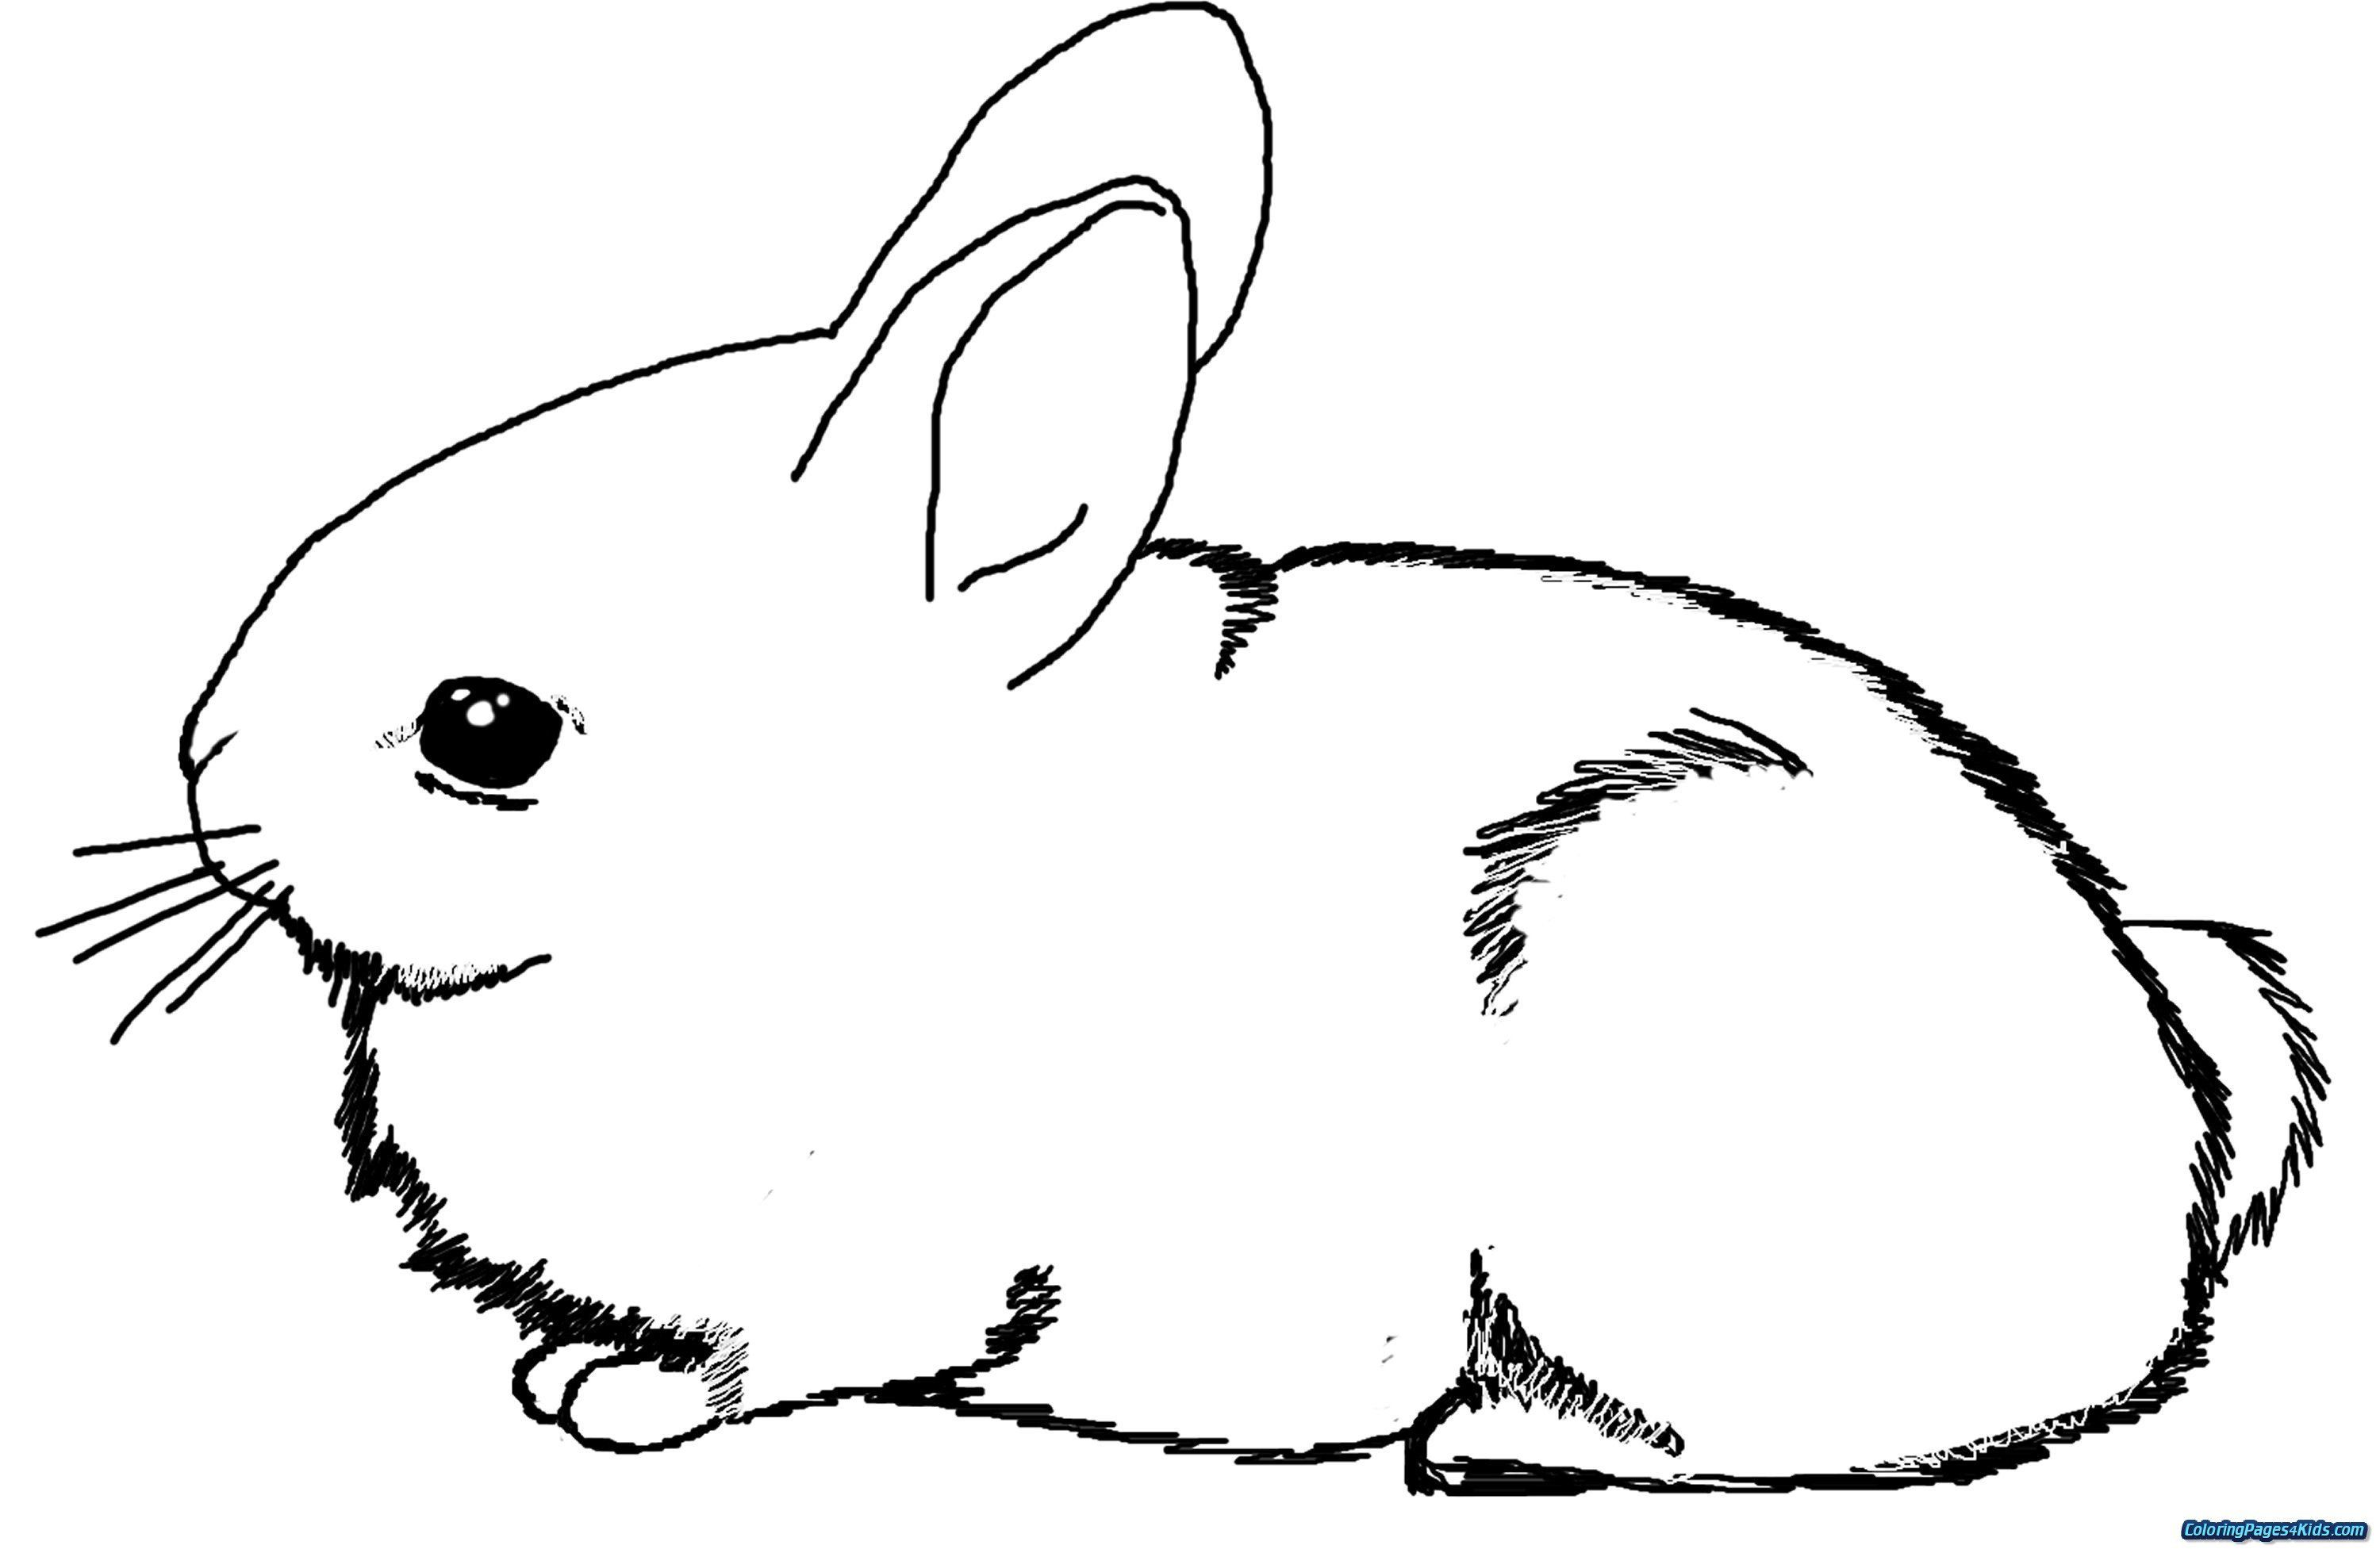 Peter Rabbit Coloring Pages New Peter Rabbit Coloring Pages Coloring Pages Patinsudouest Bunny Coloring Pages Dragon Coloring Page Cartoon Coloring Pages